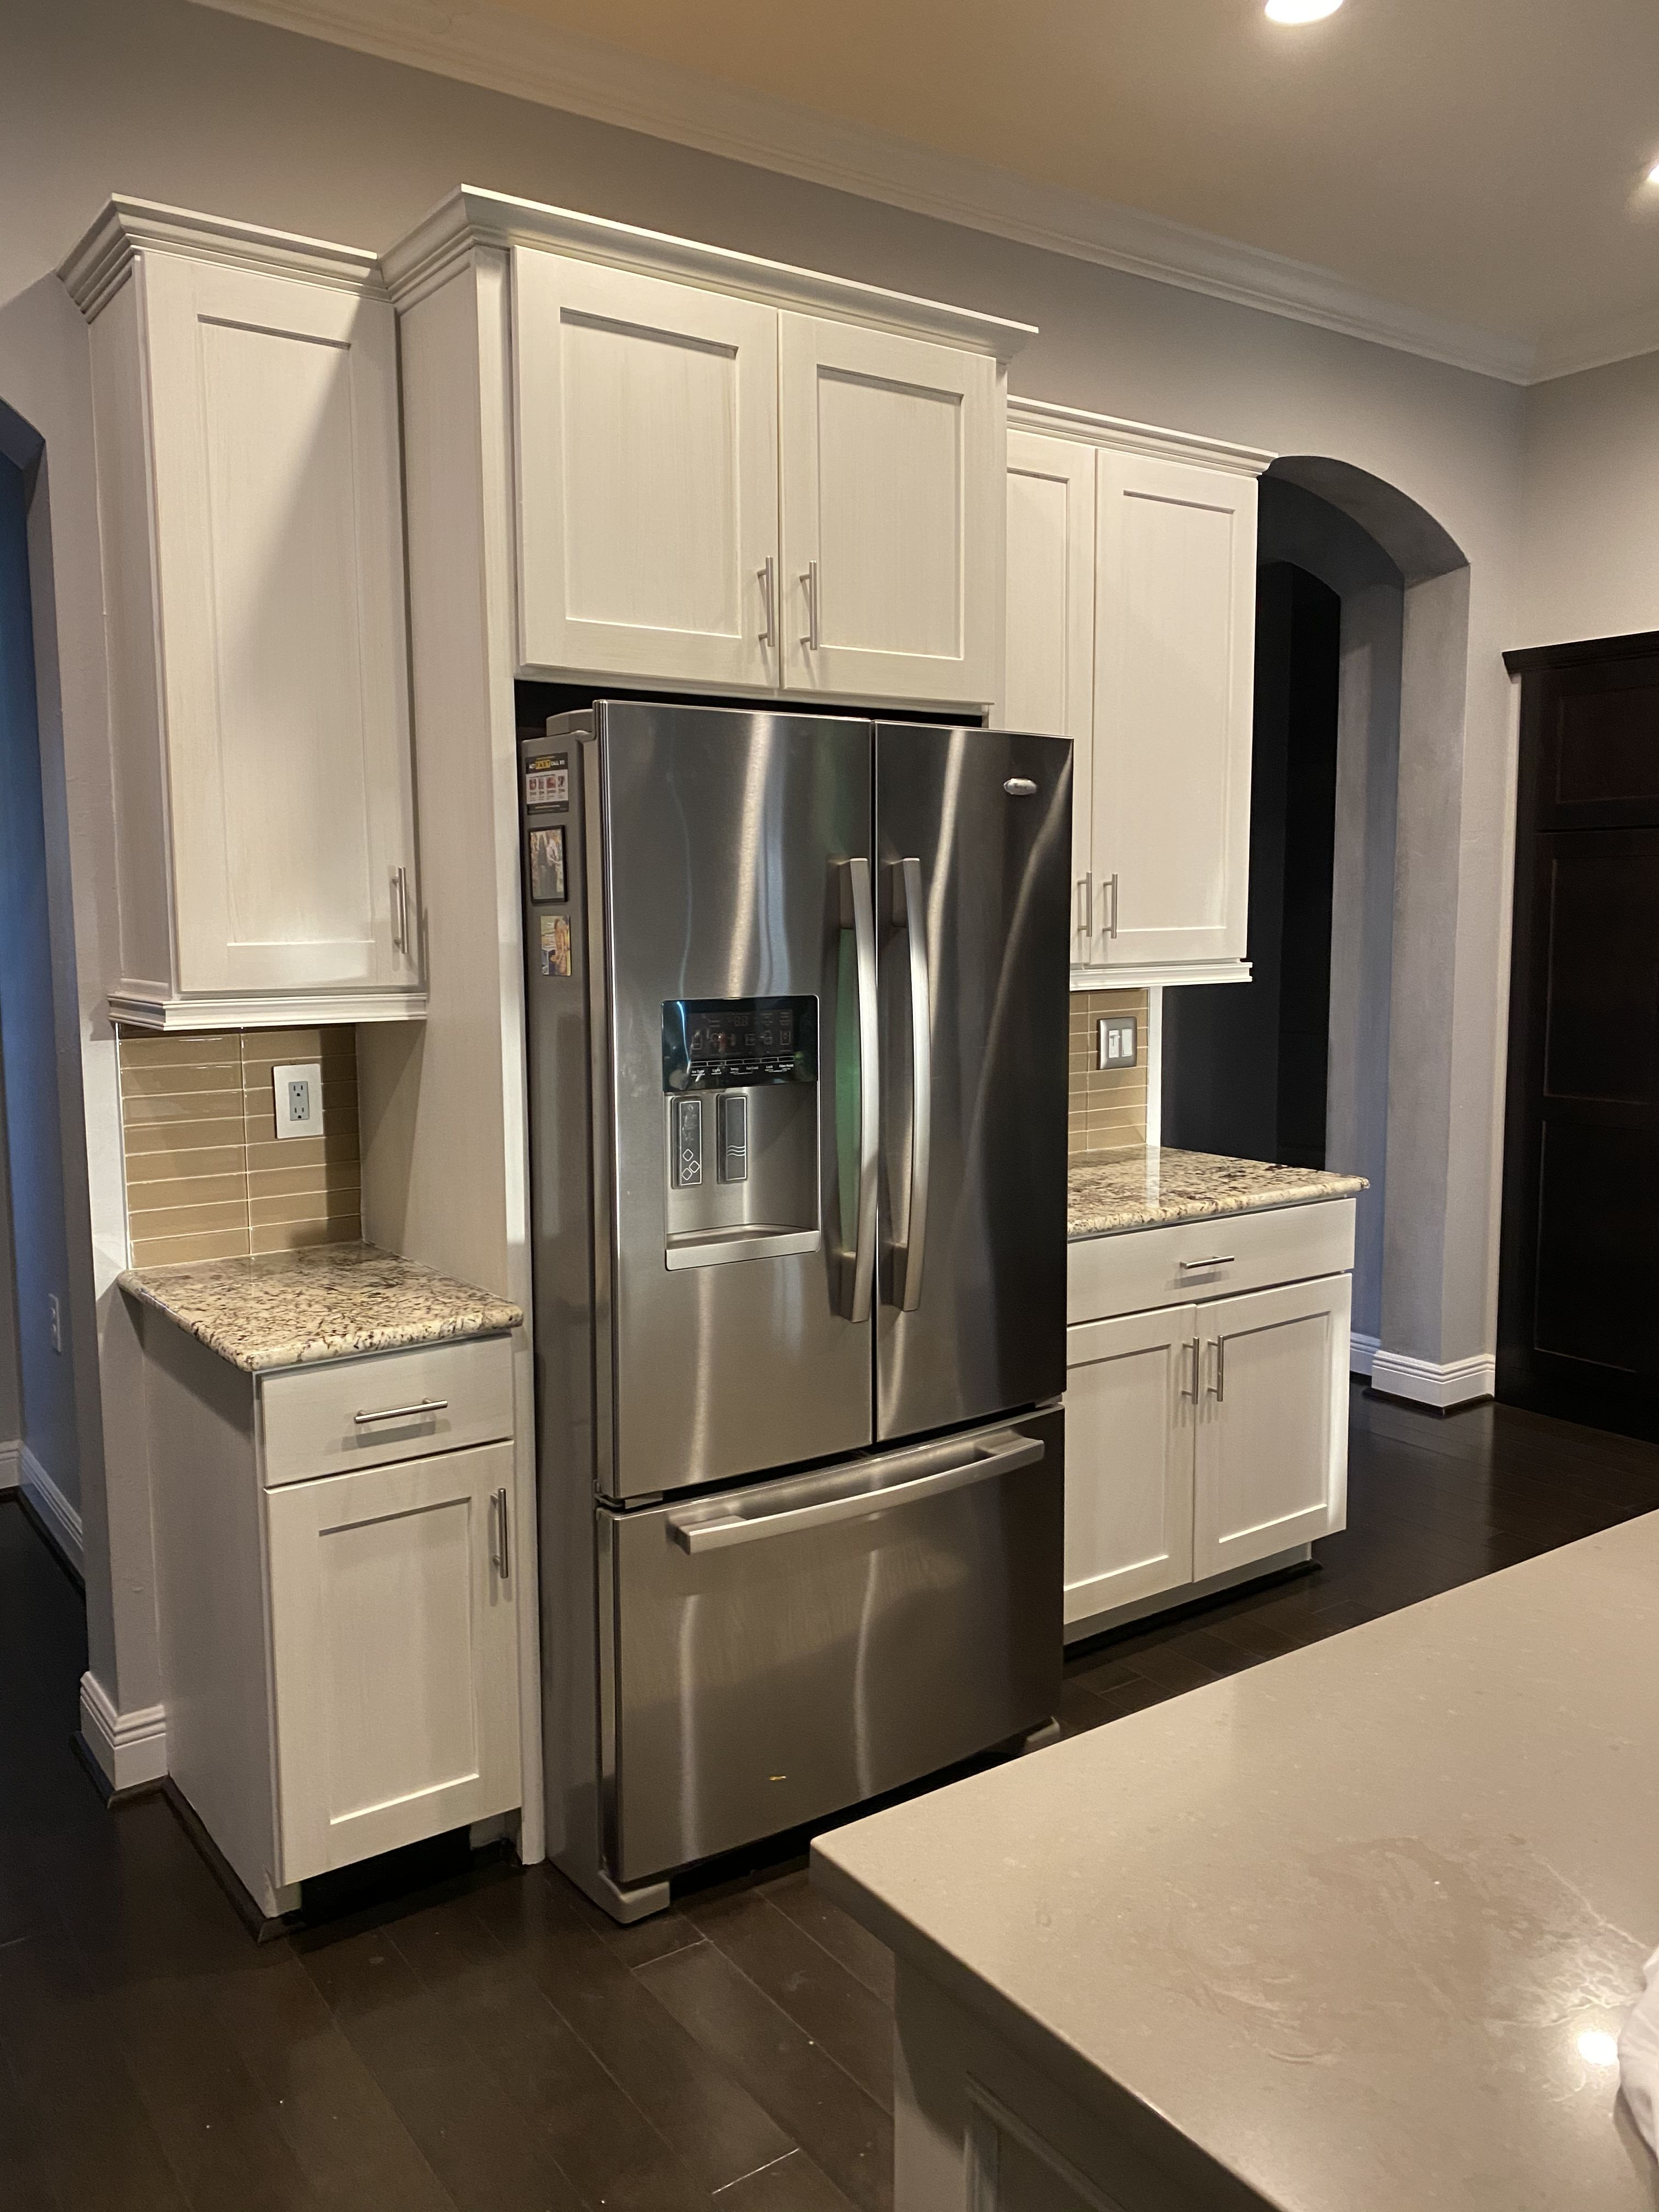 Faux Finish On Kitchen Cabinets In 2020 Kitchen Cabinetry Kitchen Cabinets In Bathroom Cabinetry